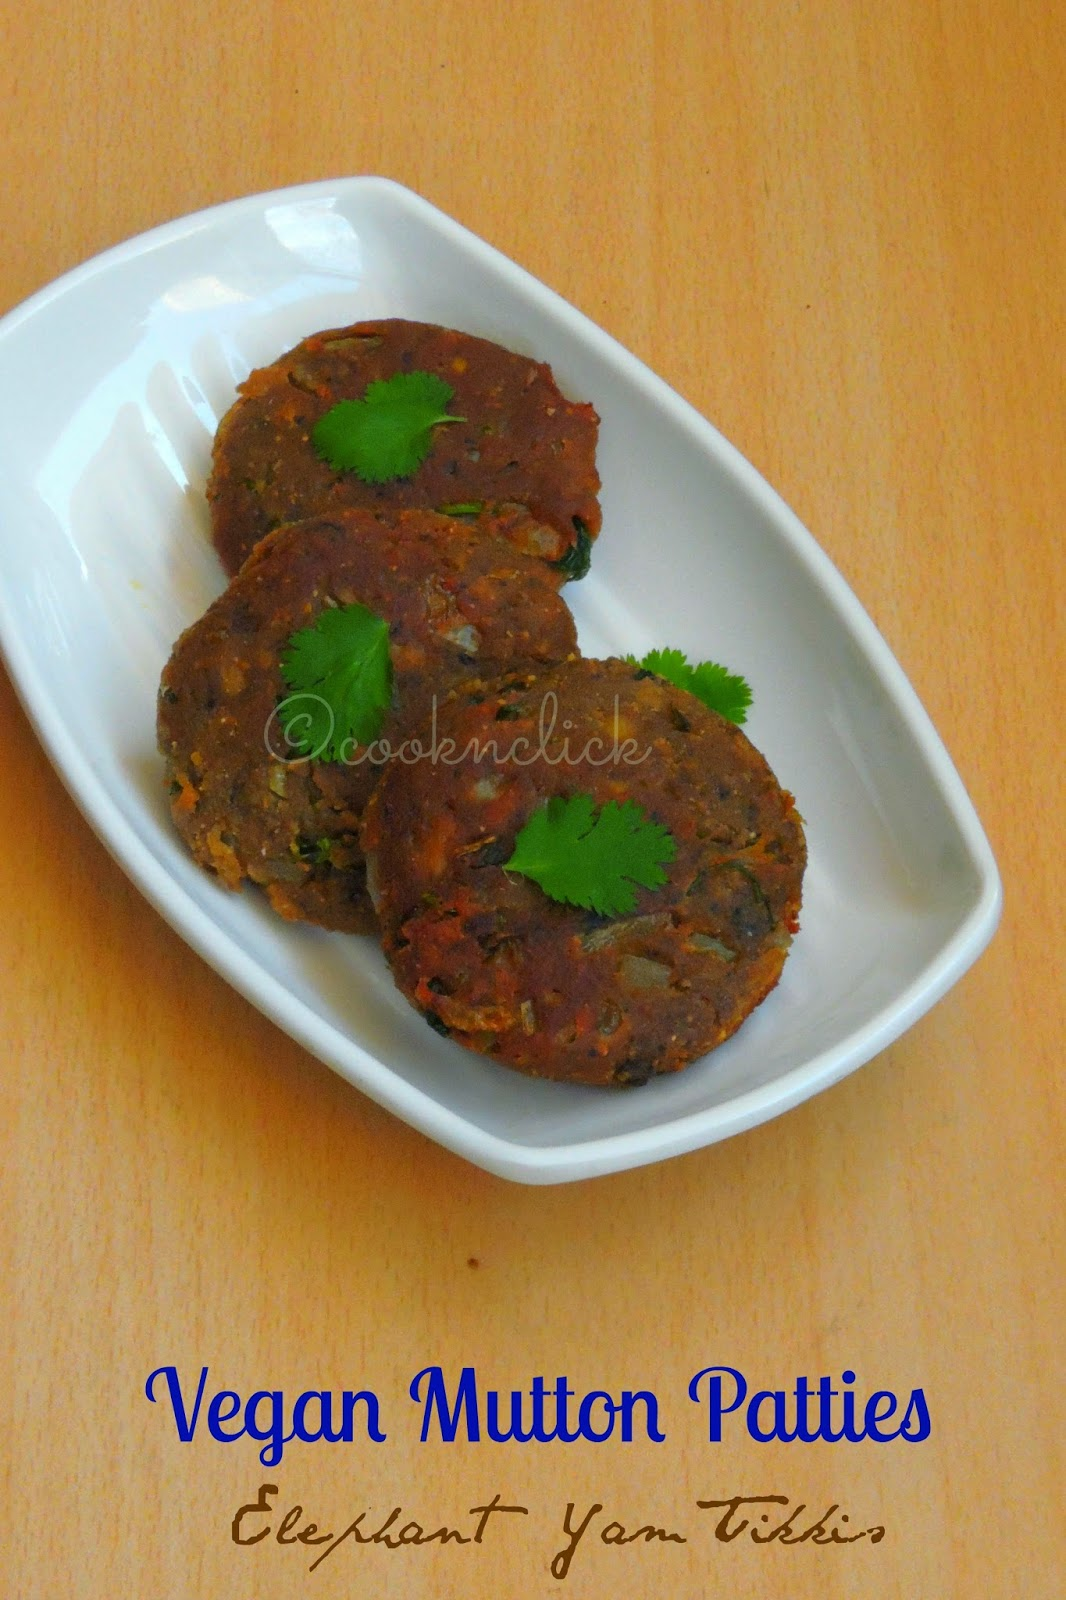 Elephant yam tikkis, karunai kizhangu cutlets, Vegan Mutton patties